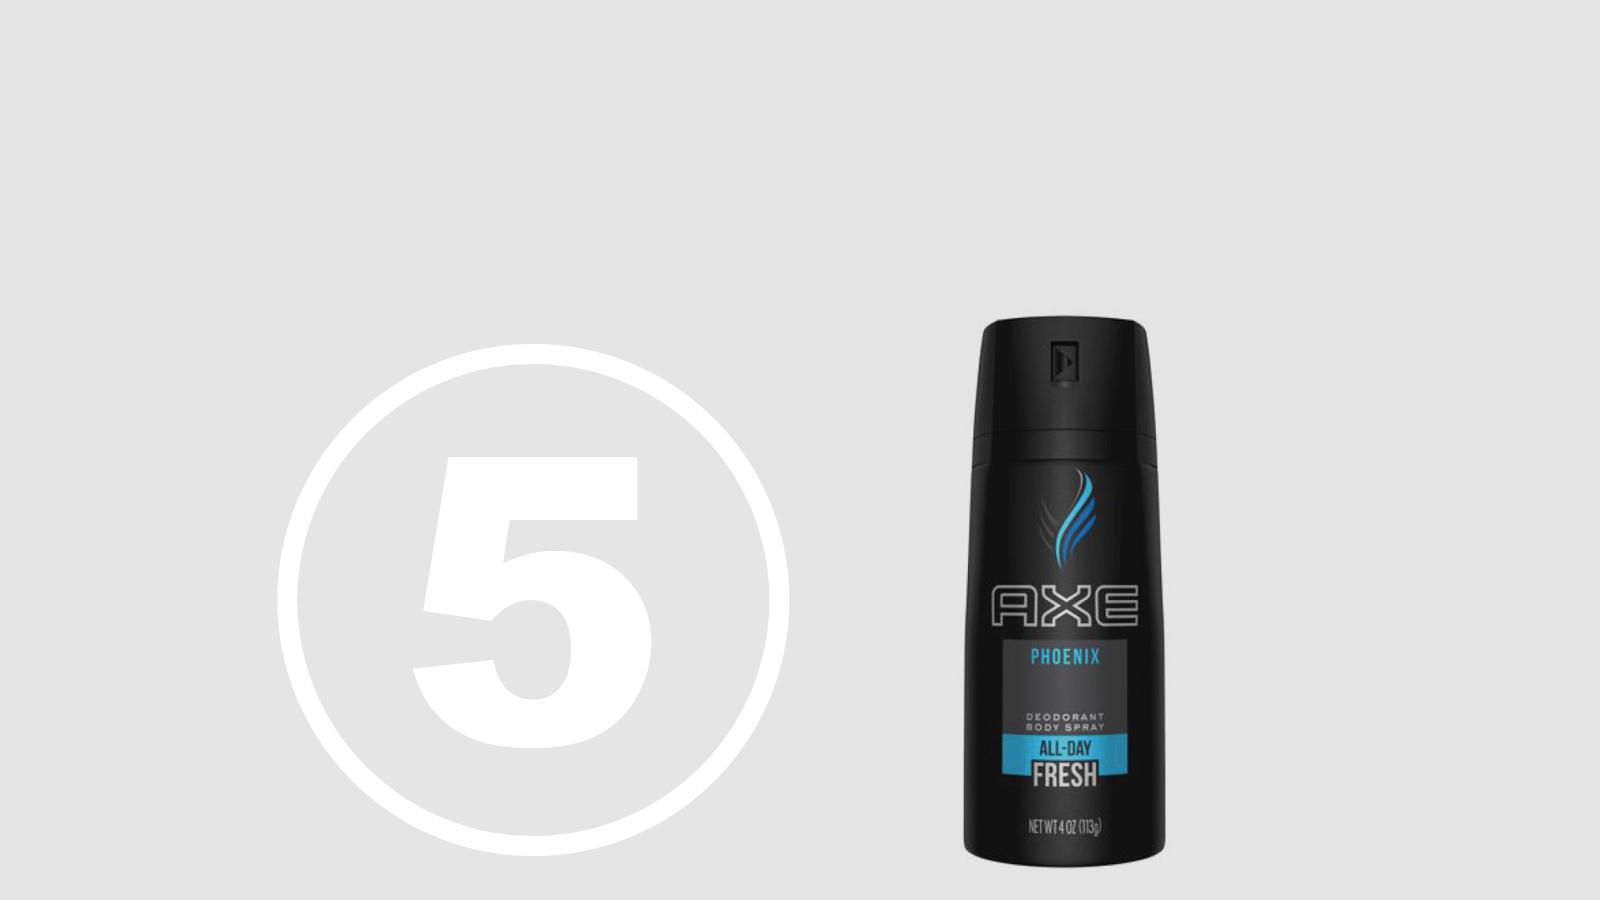 "<h5>Top Ten Most Hazardous Products</h5><h4>Axe Phoenix Body Spray</h4><p>A body spray made by Unilever and marketed to young men using an overtly sexual ad campaign.<br />We found <span class=""highlight"">14 chemicals</span> chemicals linked to chronic health effects with <span class=""highlight"">100% hidden in ""fragrance.""</span></p>"